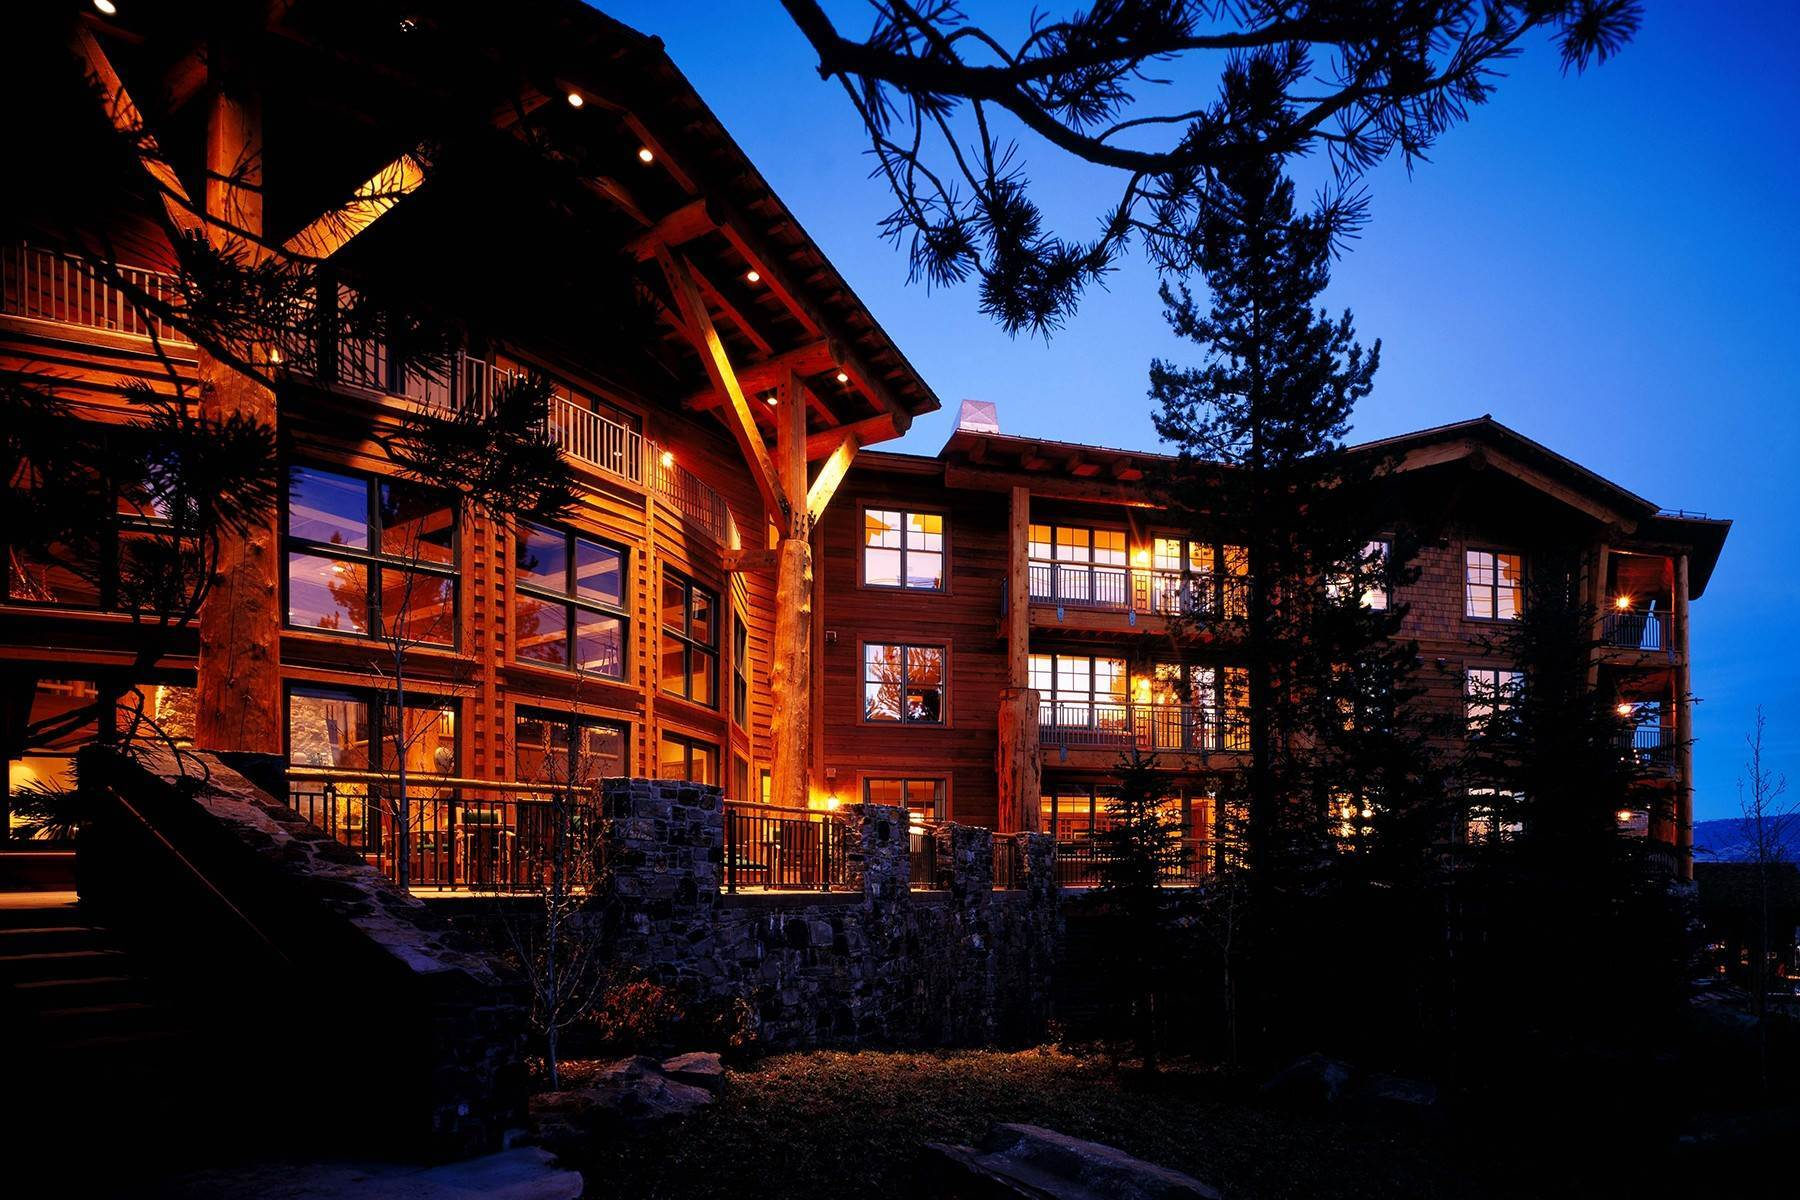 fractional ownership prop for Sale at 3340 W Cody Ln, #112 Teton Village, Wyoming 83025 United States